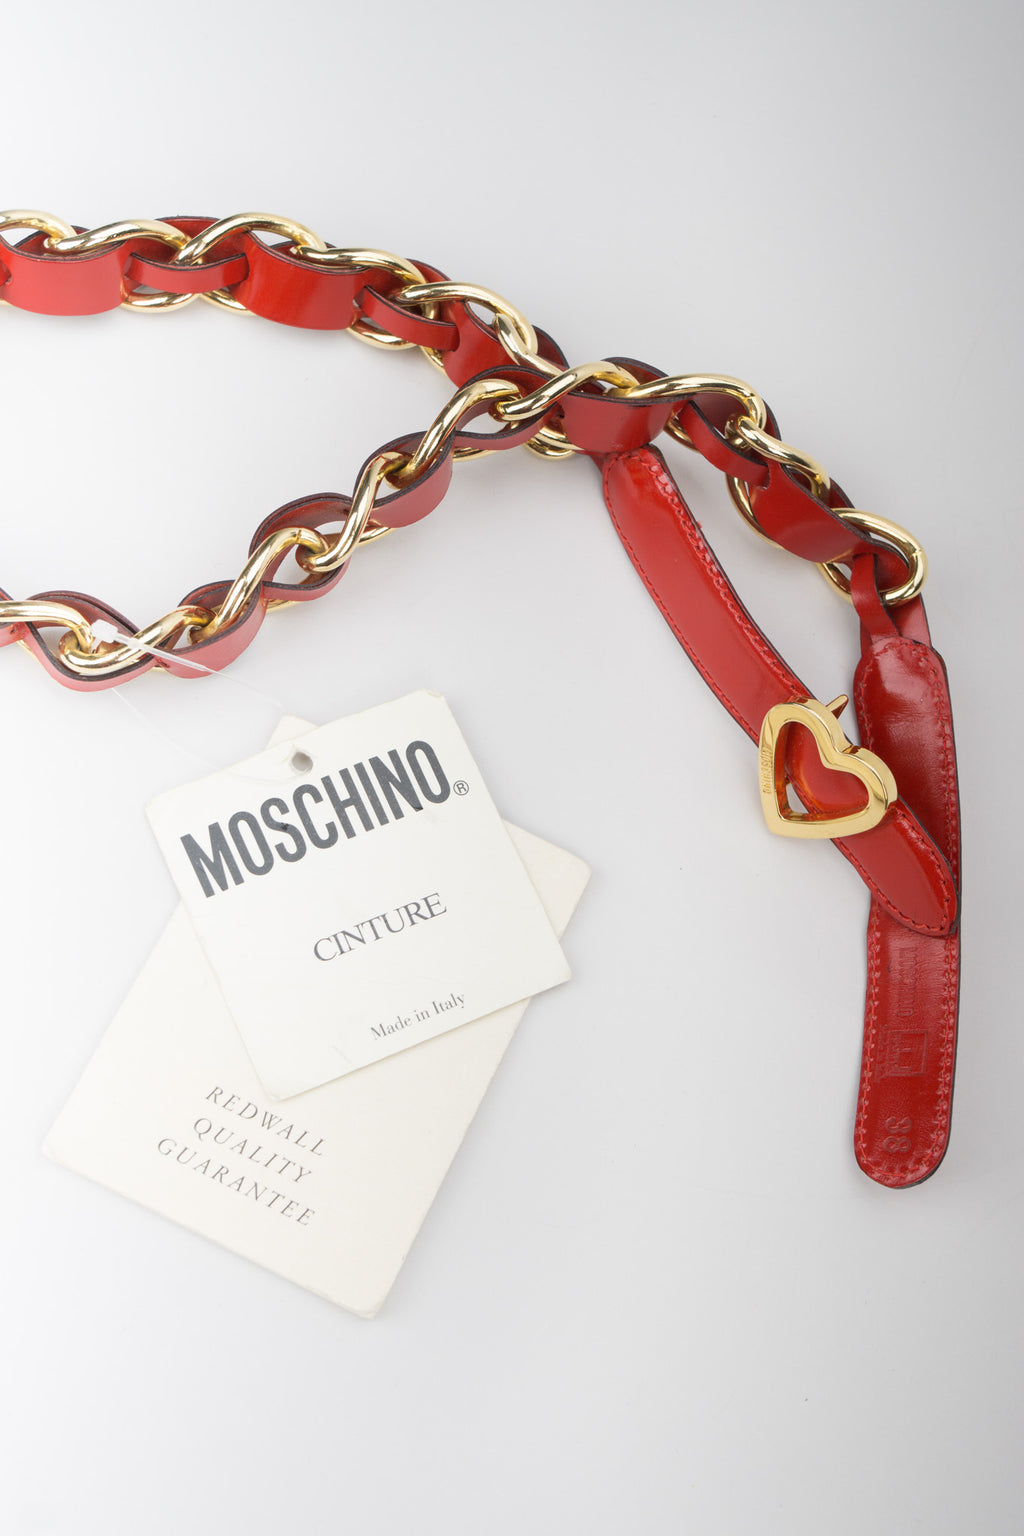 Moschino Cherry Red Patent Leather Braid Heart Chain Belt